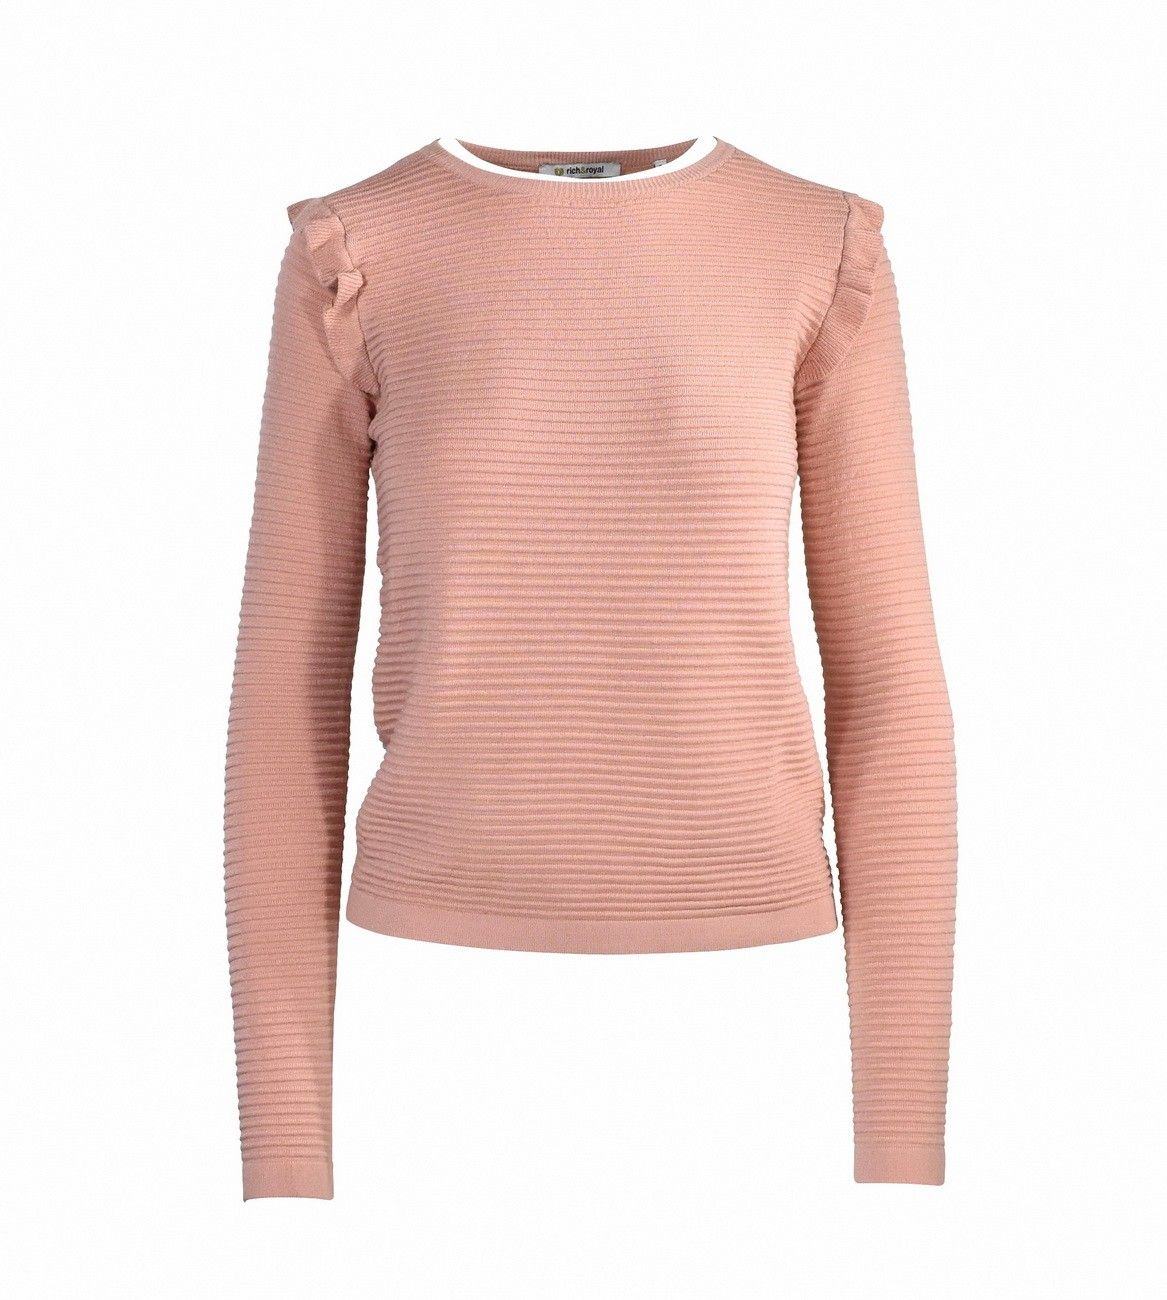 RICH & ROYAL - Damen Pullover - Crew Neck - Powder